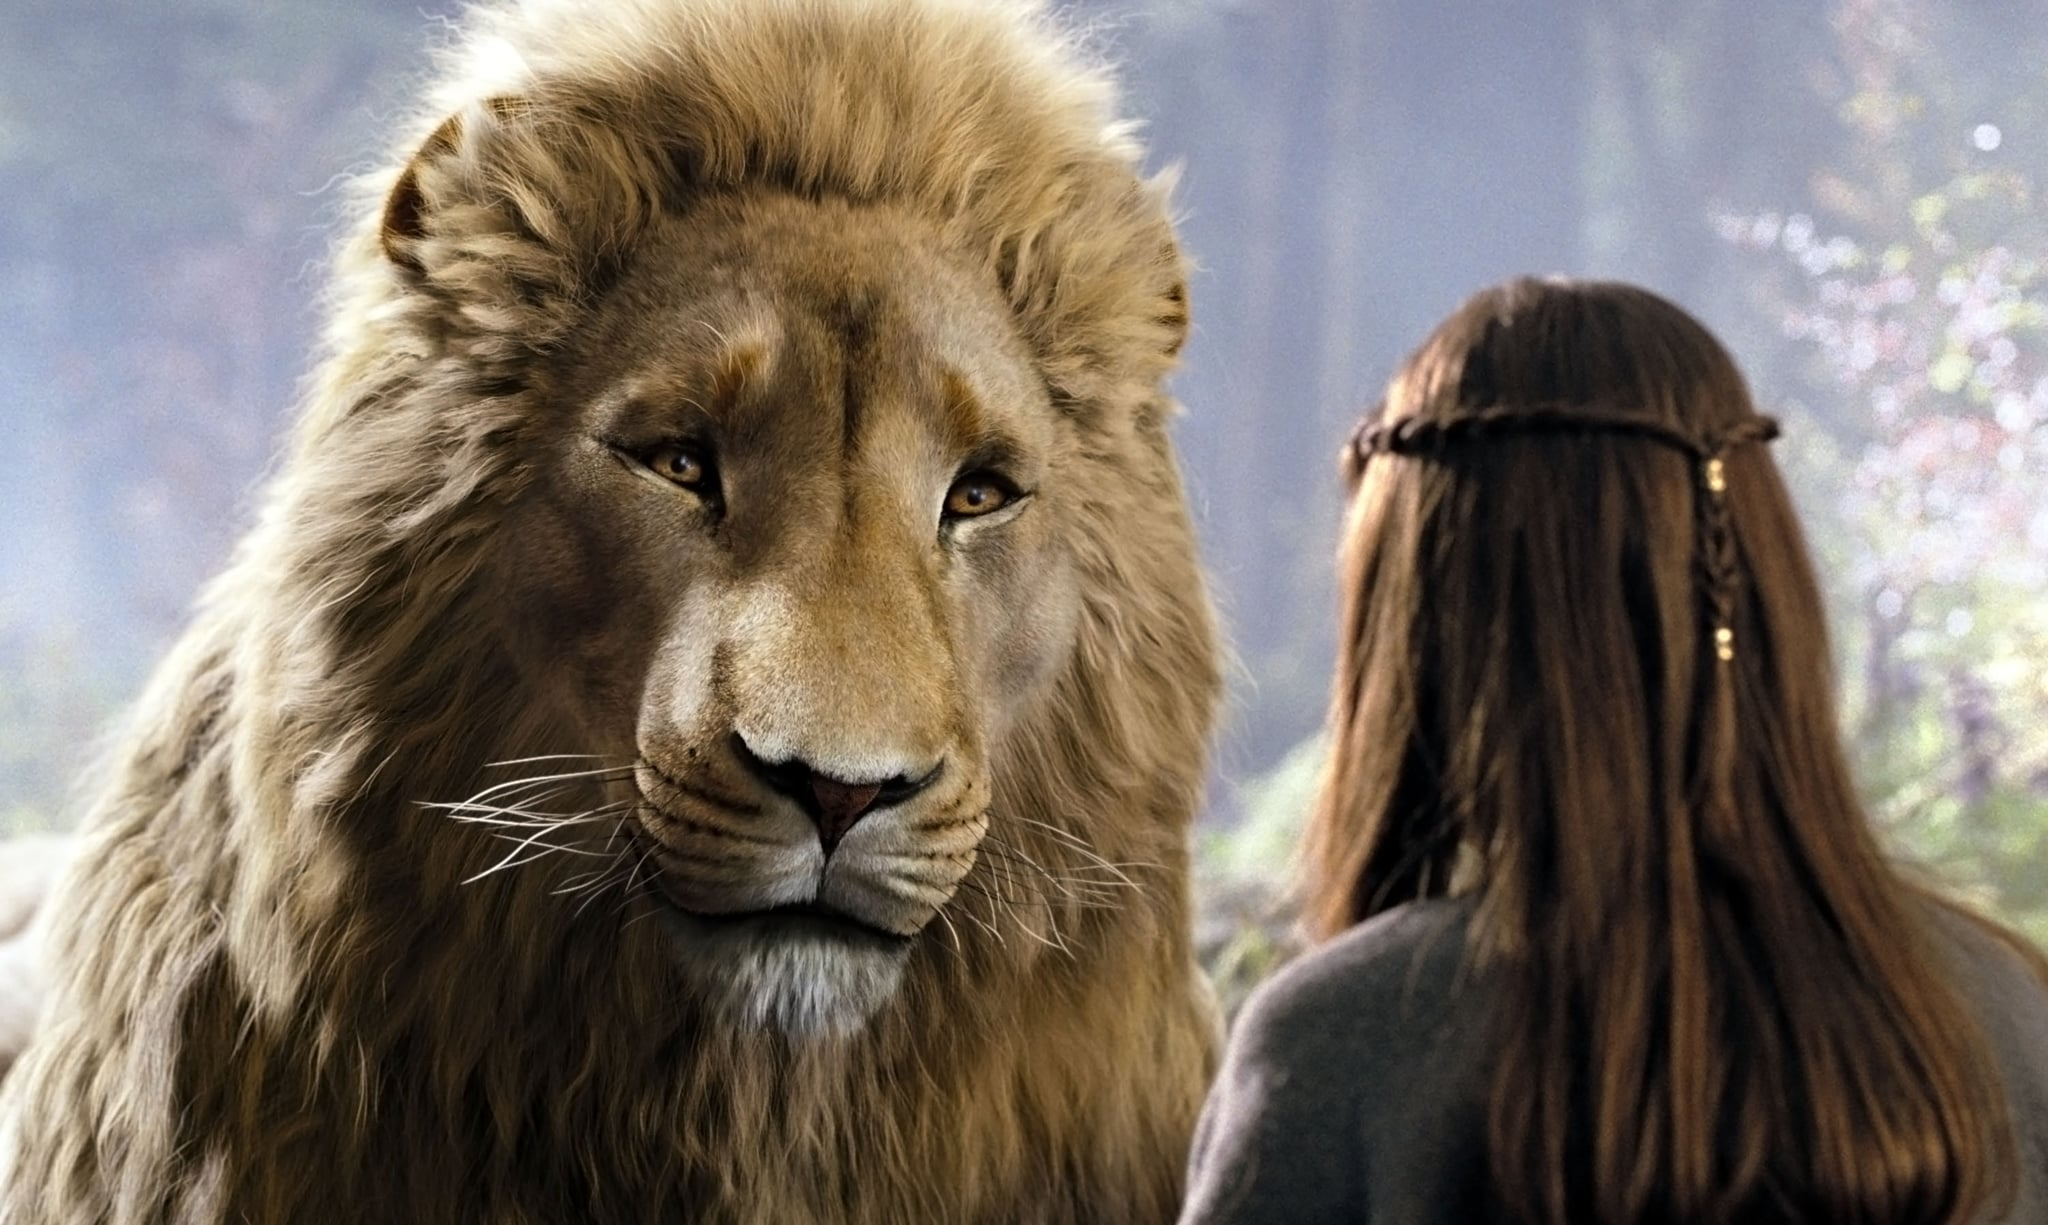 THE CHRONICLES OF NARNIA: PRINCE CASPIAN, 2008. Walt Disney Co./Courtesy Everett Collection